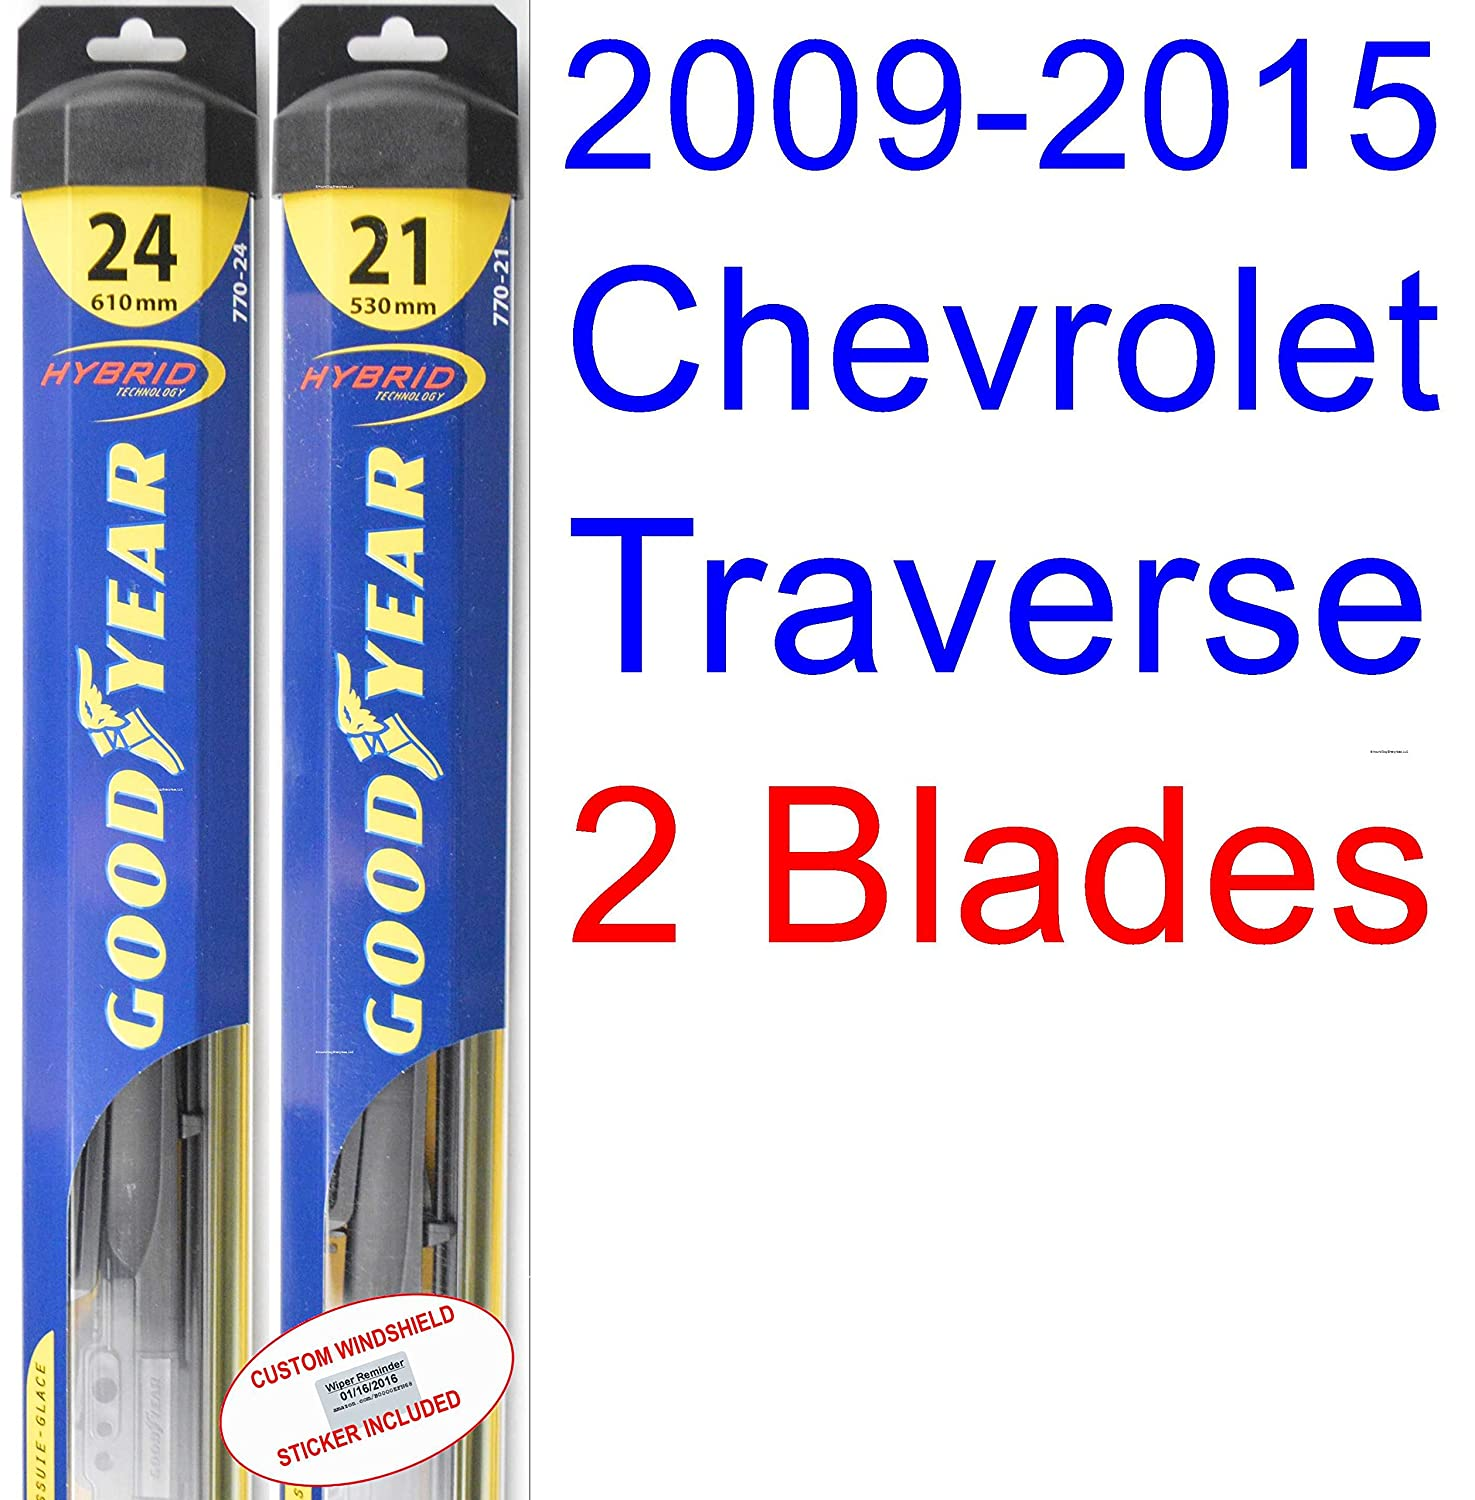 2009 2015 Chevrolet Traverse Replacement Wiper Blade Set Chevy Oil Filter Location Kit Of 2 Blades Goodyear Hybrid 20102011201220132014